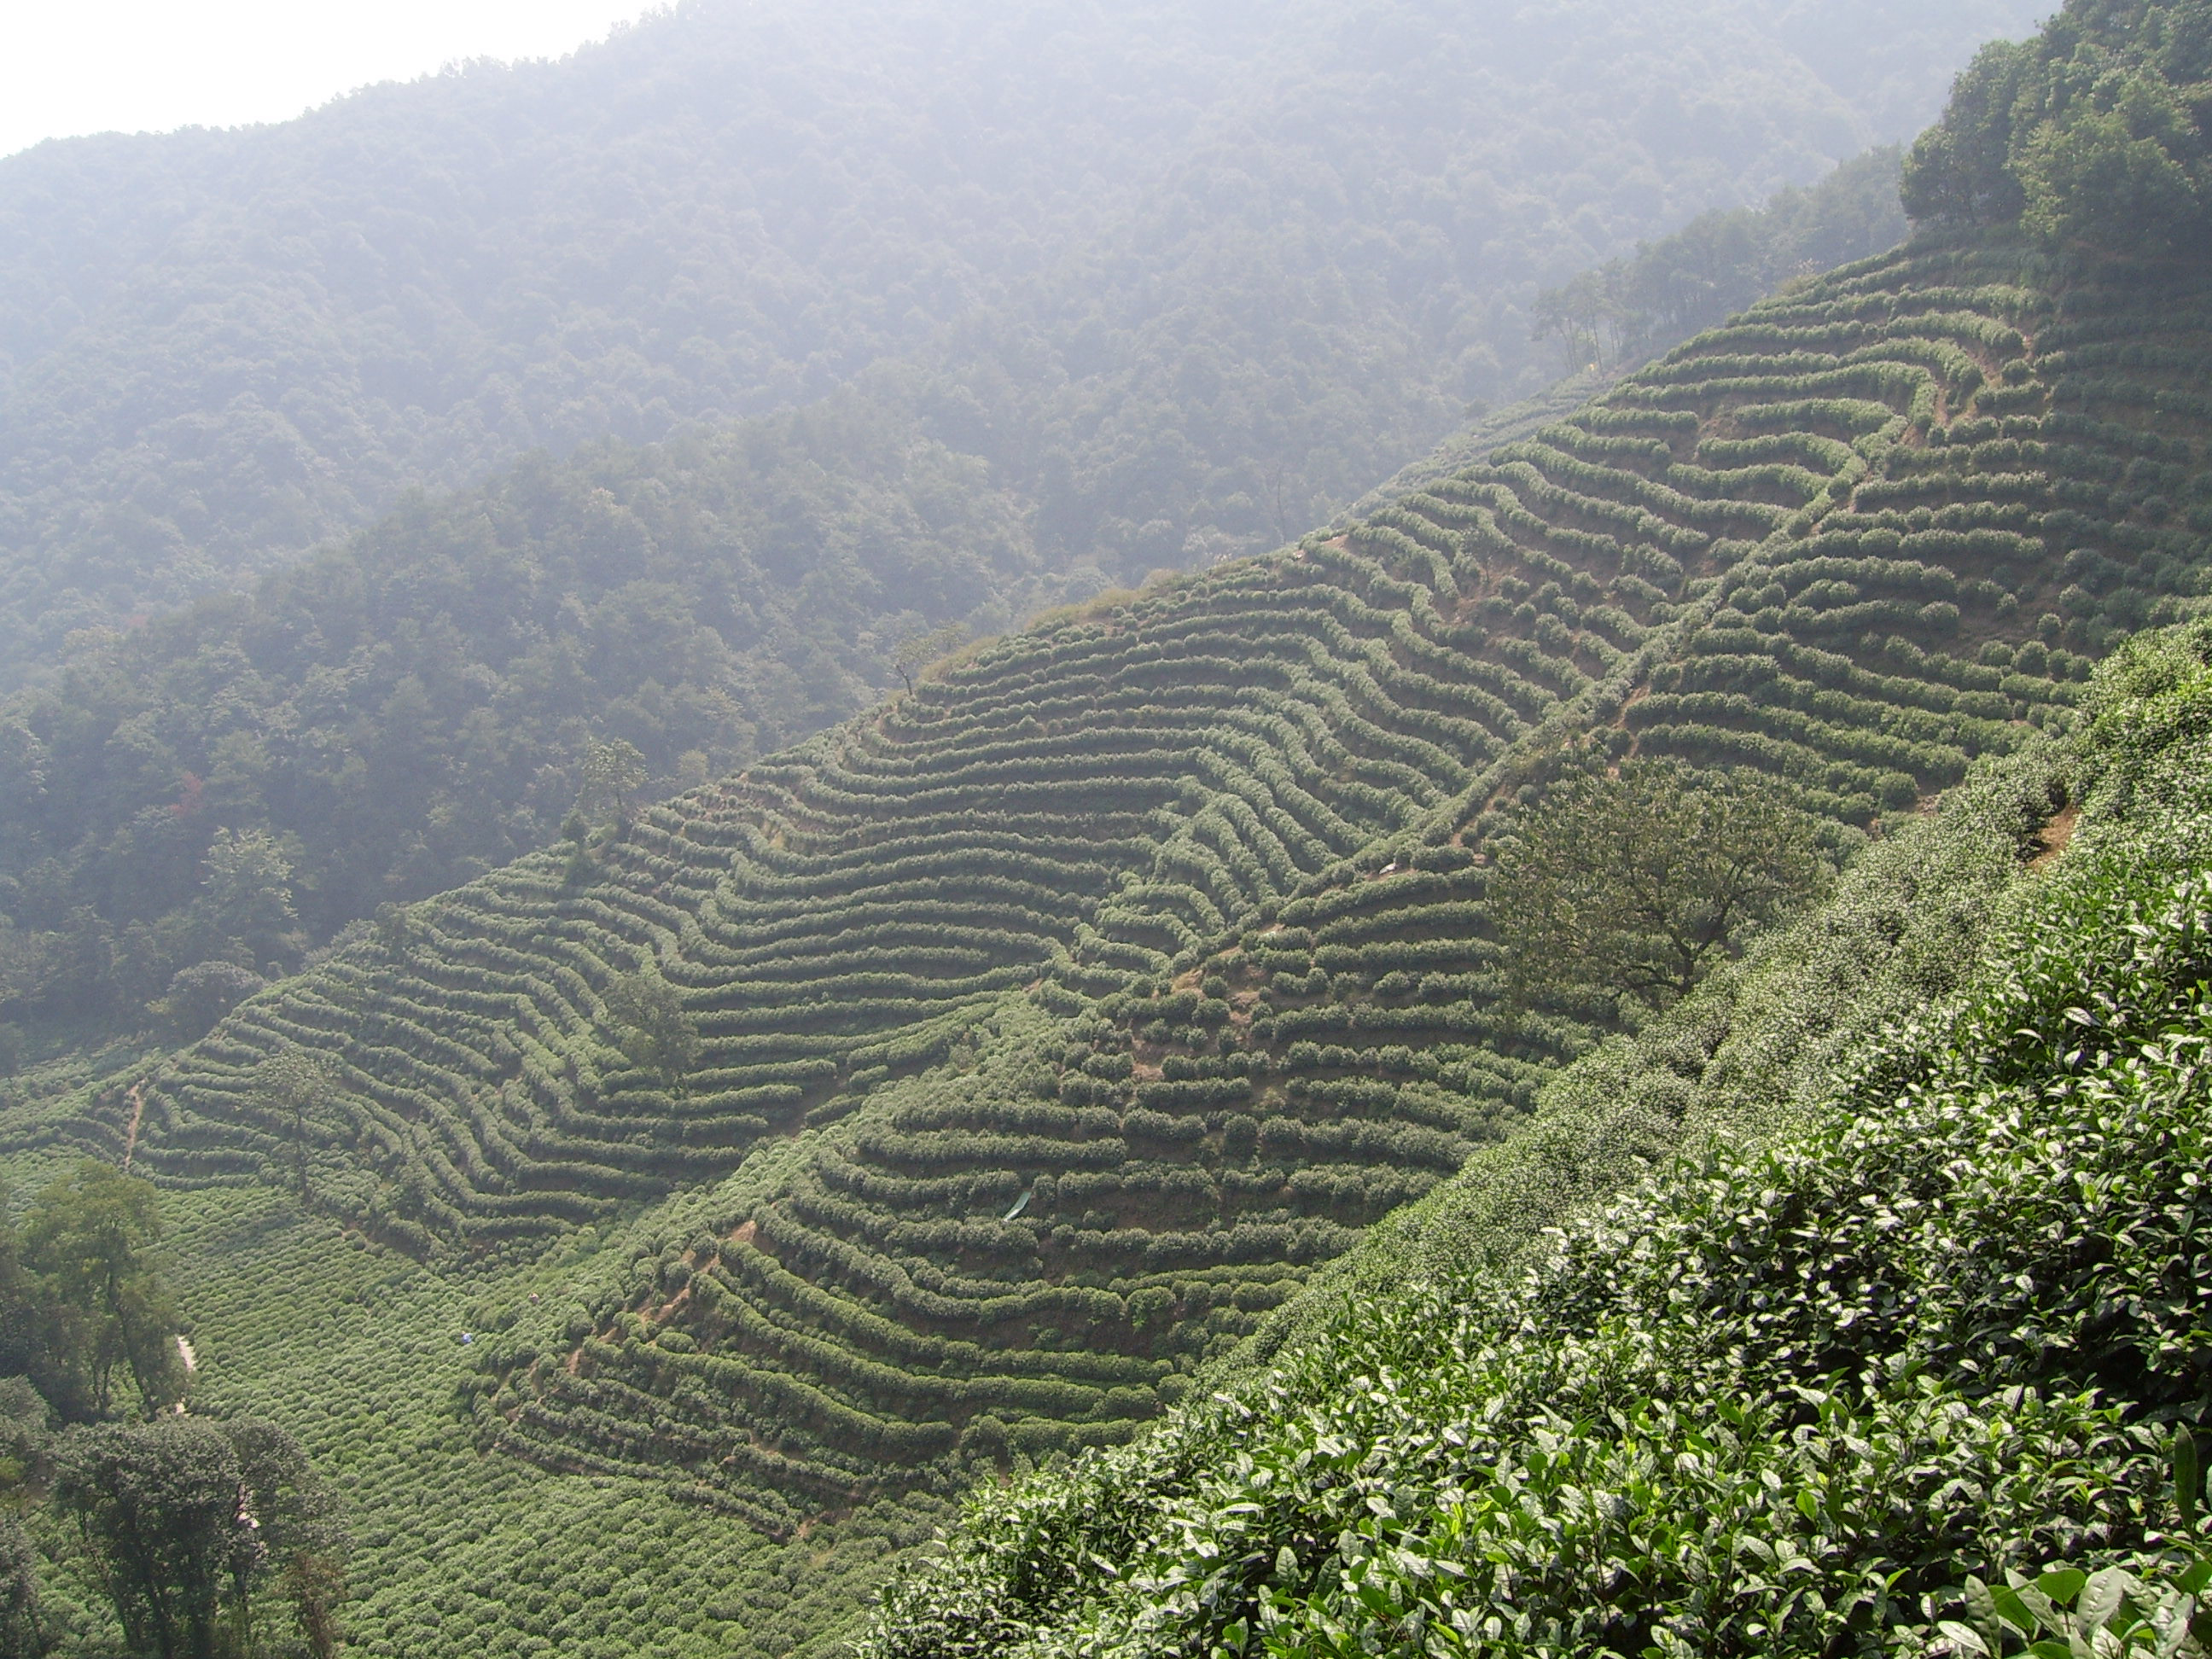 Tea plantation in hangzhou - from Wikimedia Commons